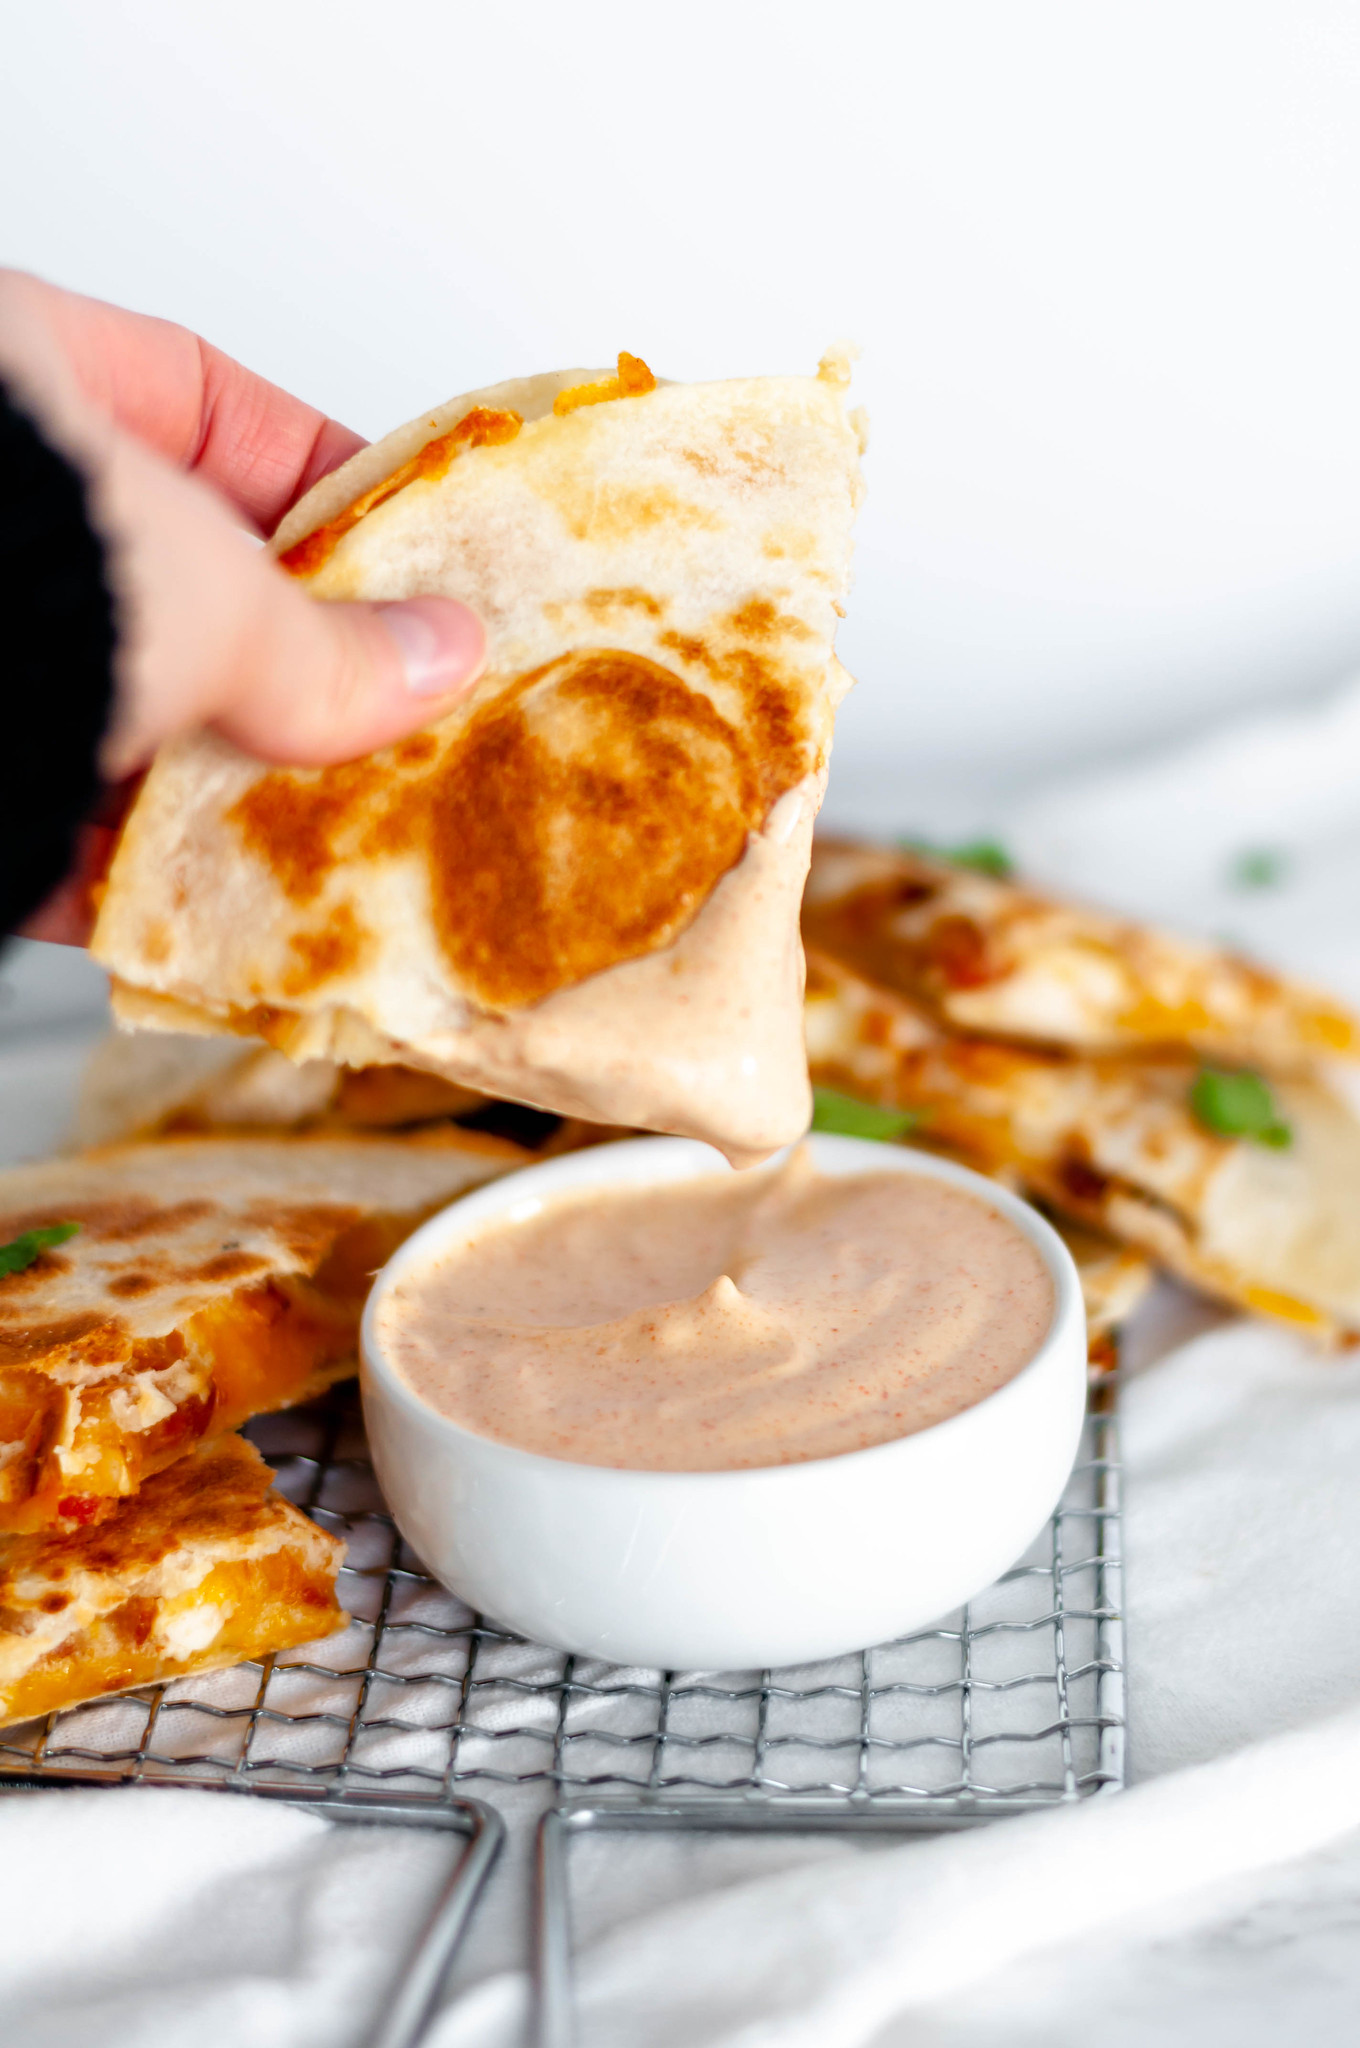 This copycat Taco Bell Quesadilla Sauce is just like the real deal and so simple to make at home. Spice up your favorite quesadilla with this yummy sauce.This copycat Taco Bell Quesadilla Sauce is just like the real deal and so simple to make at home. Spice up your favorite quesadilla with this yummy sauce.